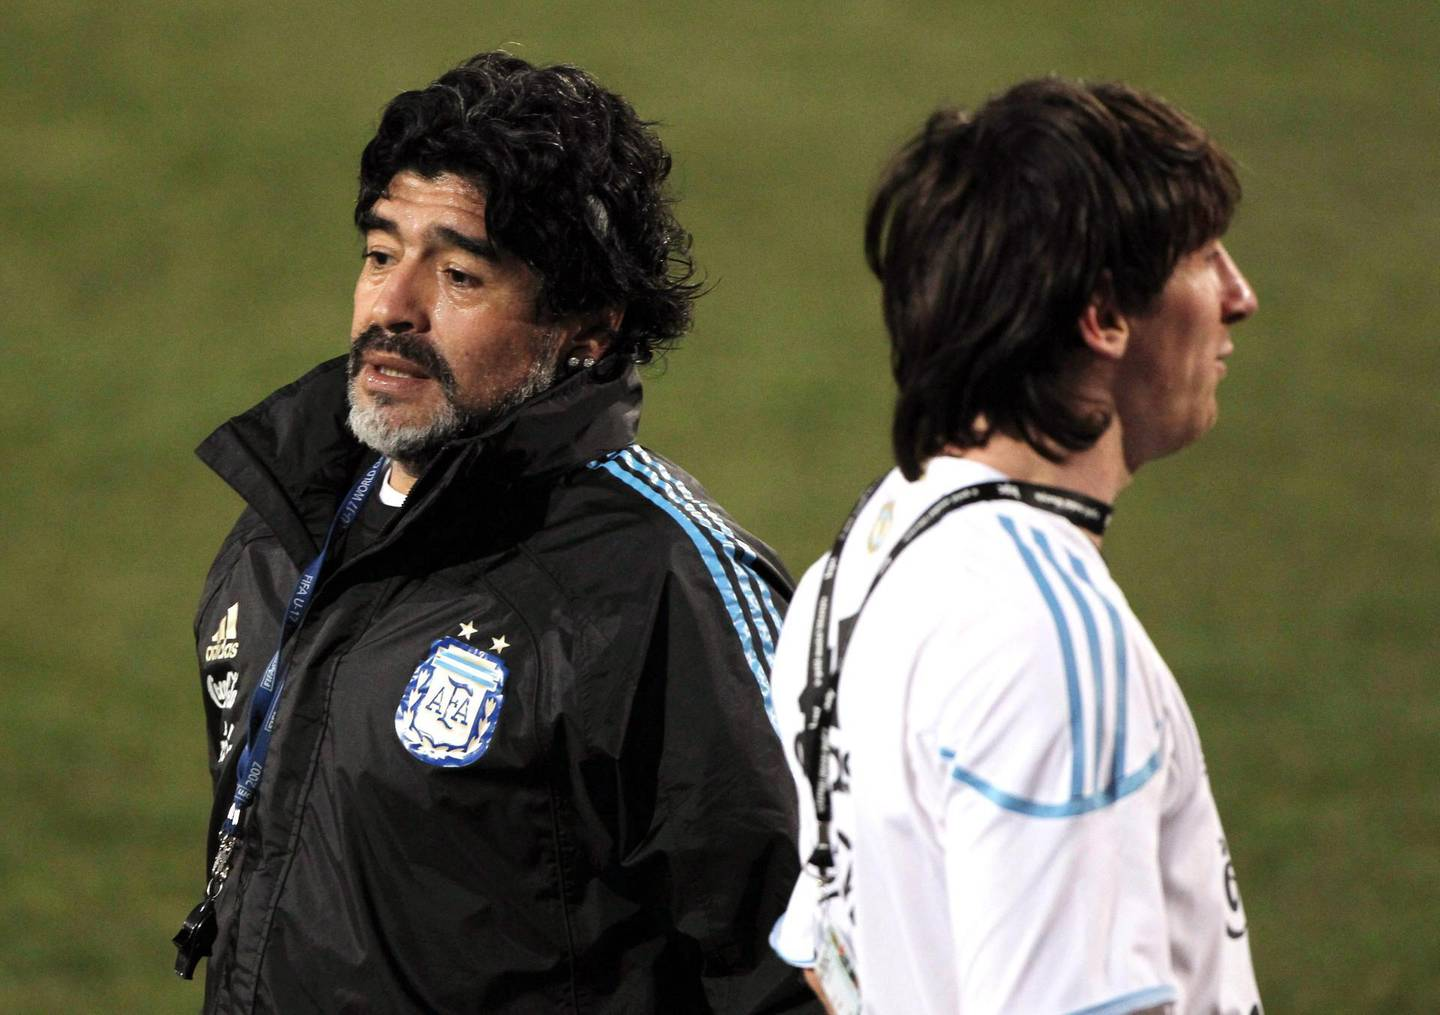 epa08842433 (FILE) - Argentina's head coach Diego Maradona (L) passes by Argentinian forward Lionel Messi (R) during their team's training session at the Pretoria University's specialized sports training centre in Pretoria, South Africa, 30 June 2010 (re-issued on 25 November 2020). Diego Maradona has died after a heart attack, media reports claimed on 25 November 2020. The Argentine soccer great was among the best players ever and who led his country to the 1986 World Cup title before later struggling with cocaine use and obesity. He was 60.  EPA/CEZARO DE LUCA *** Local Caption *** 02231158